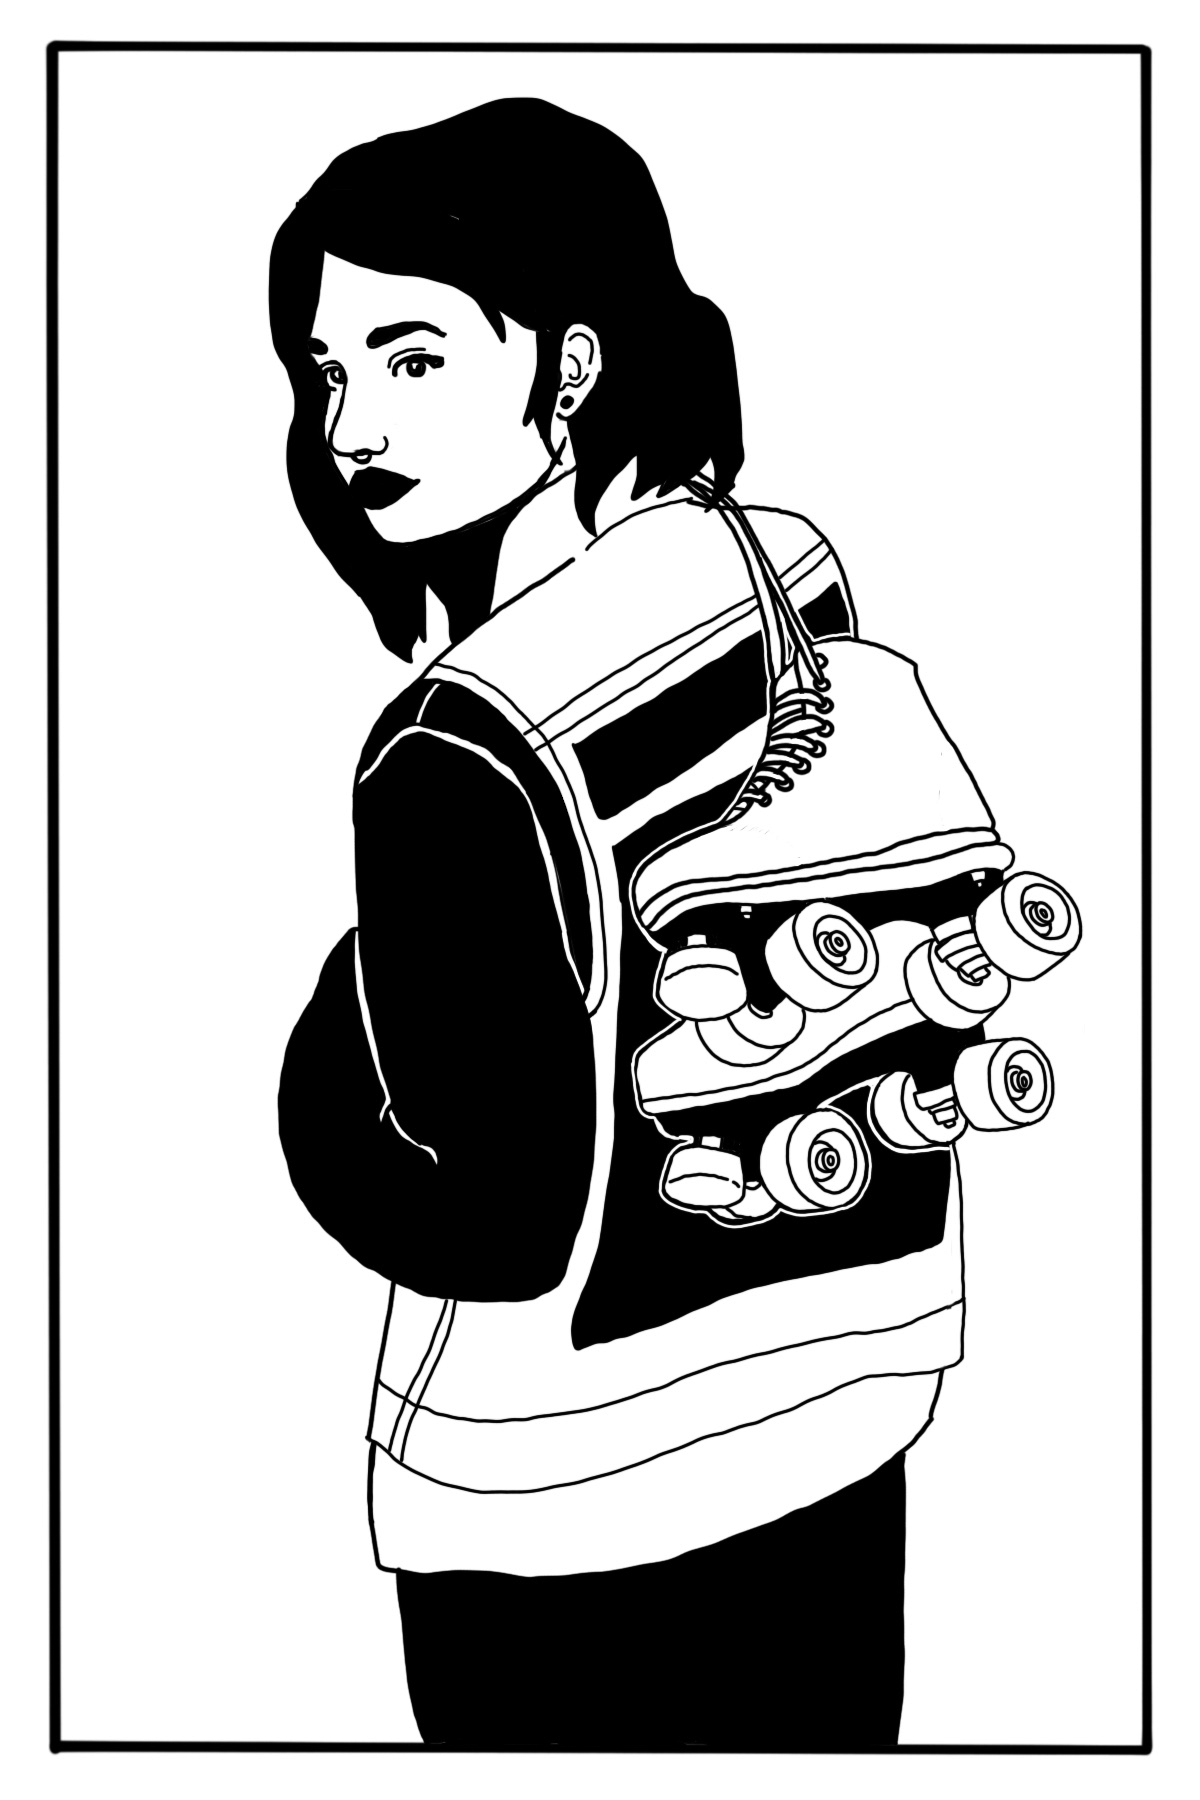 Illustration of a woman carrying a set of roller skates